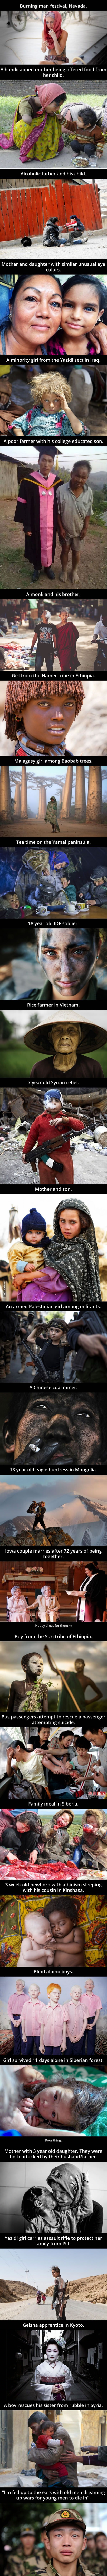 29 Unbelievable Photos Of The Human Race - 9GAG